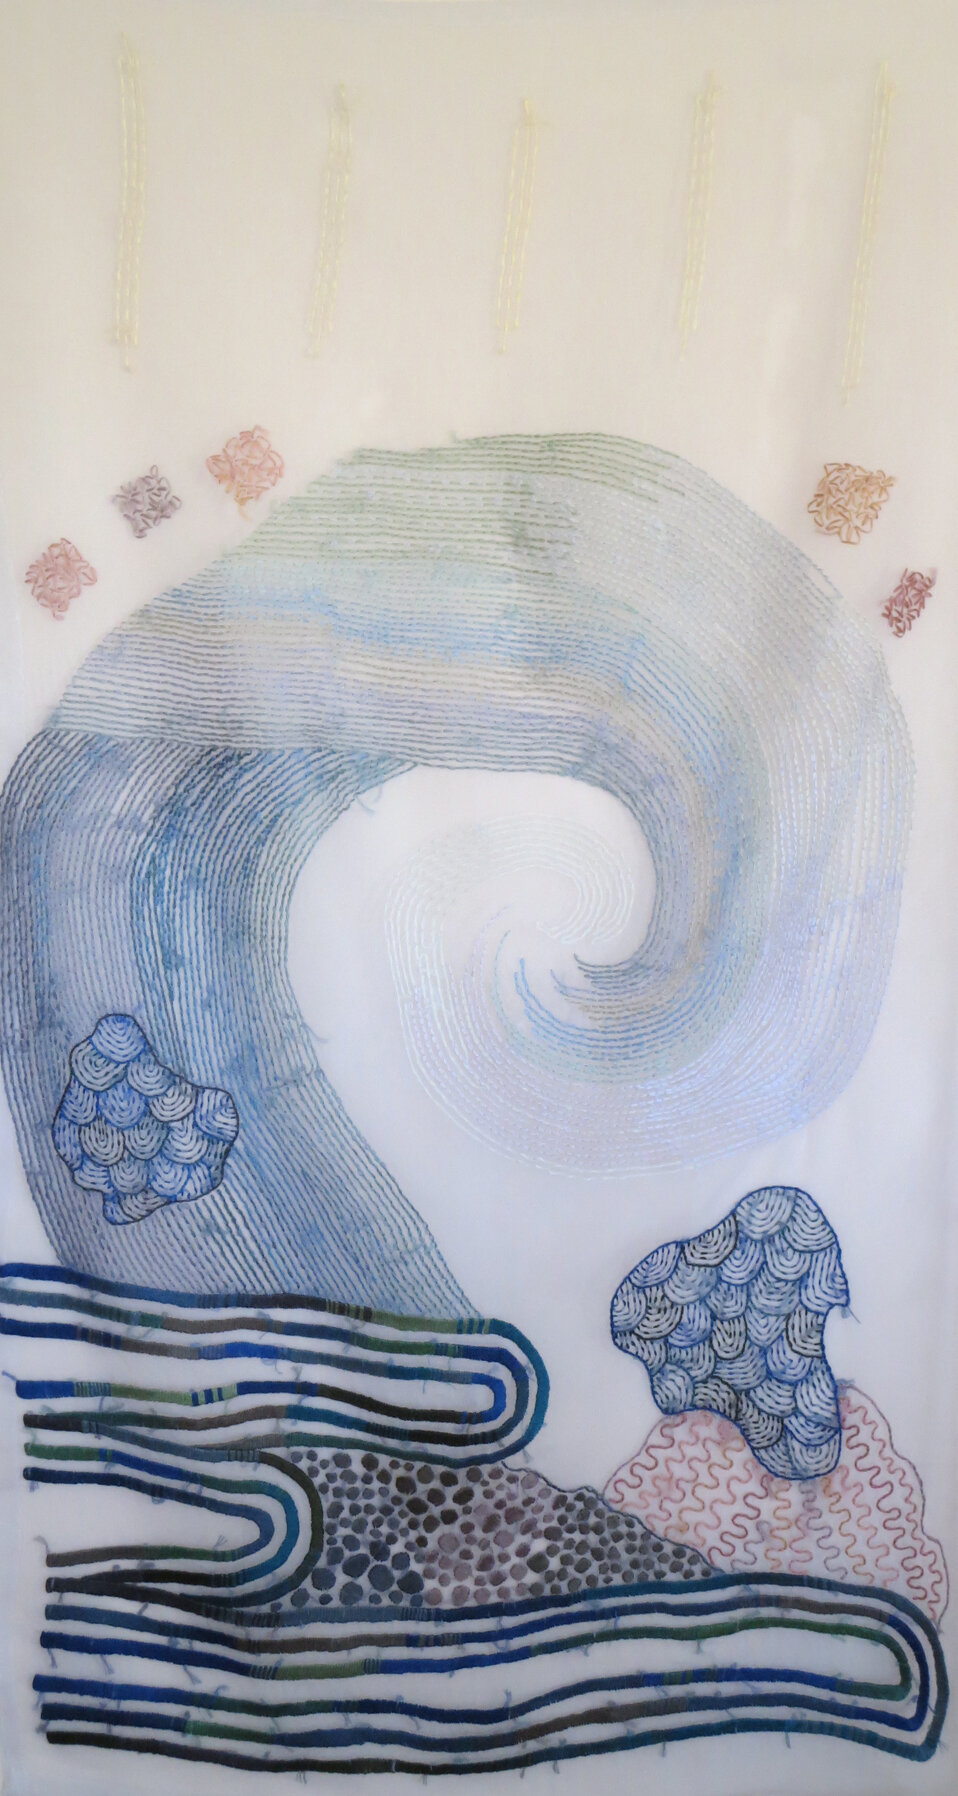 Luminous Dancing Wave Explodes  , cloth and thread, 50 x 25 in